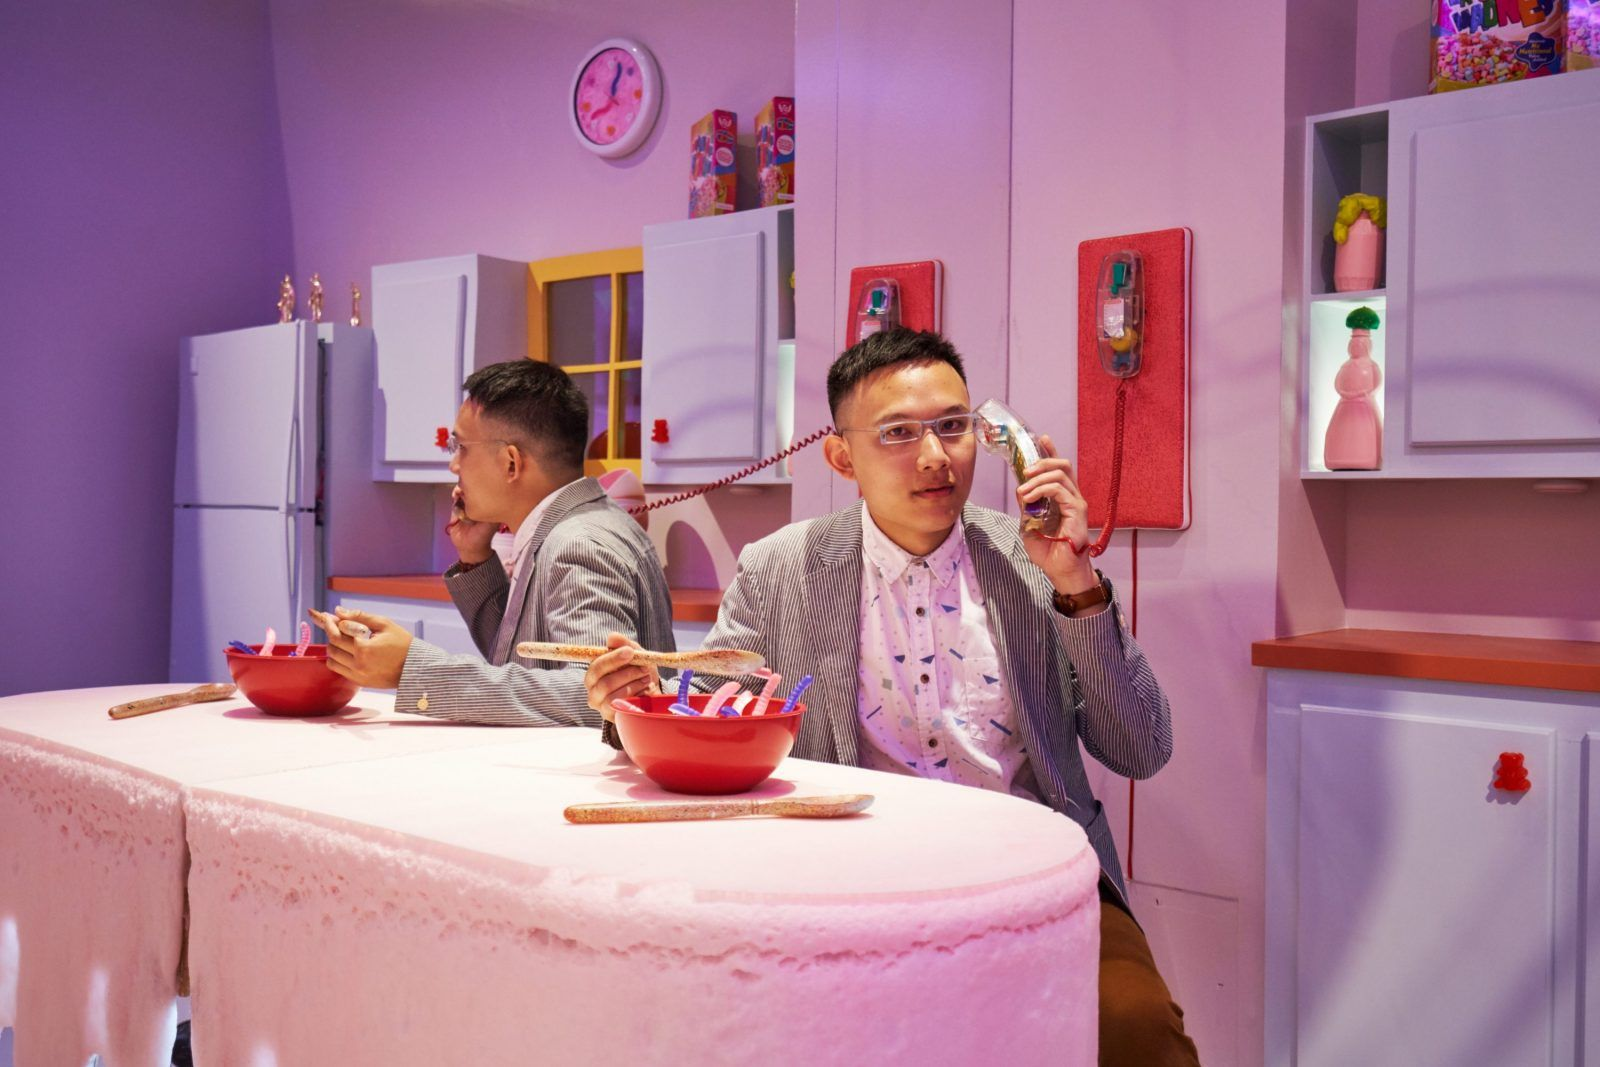 Sweet Tooth Hotel Opens in Dallas — and Getting Into This